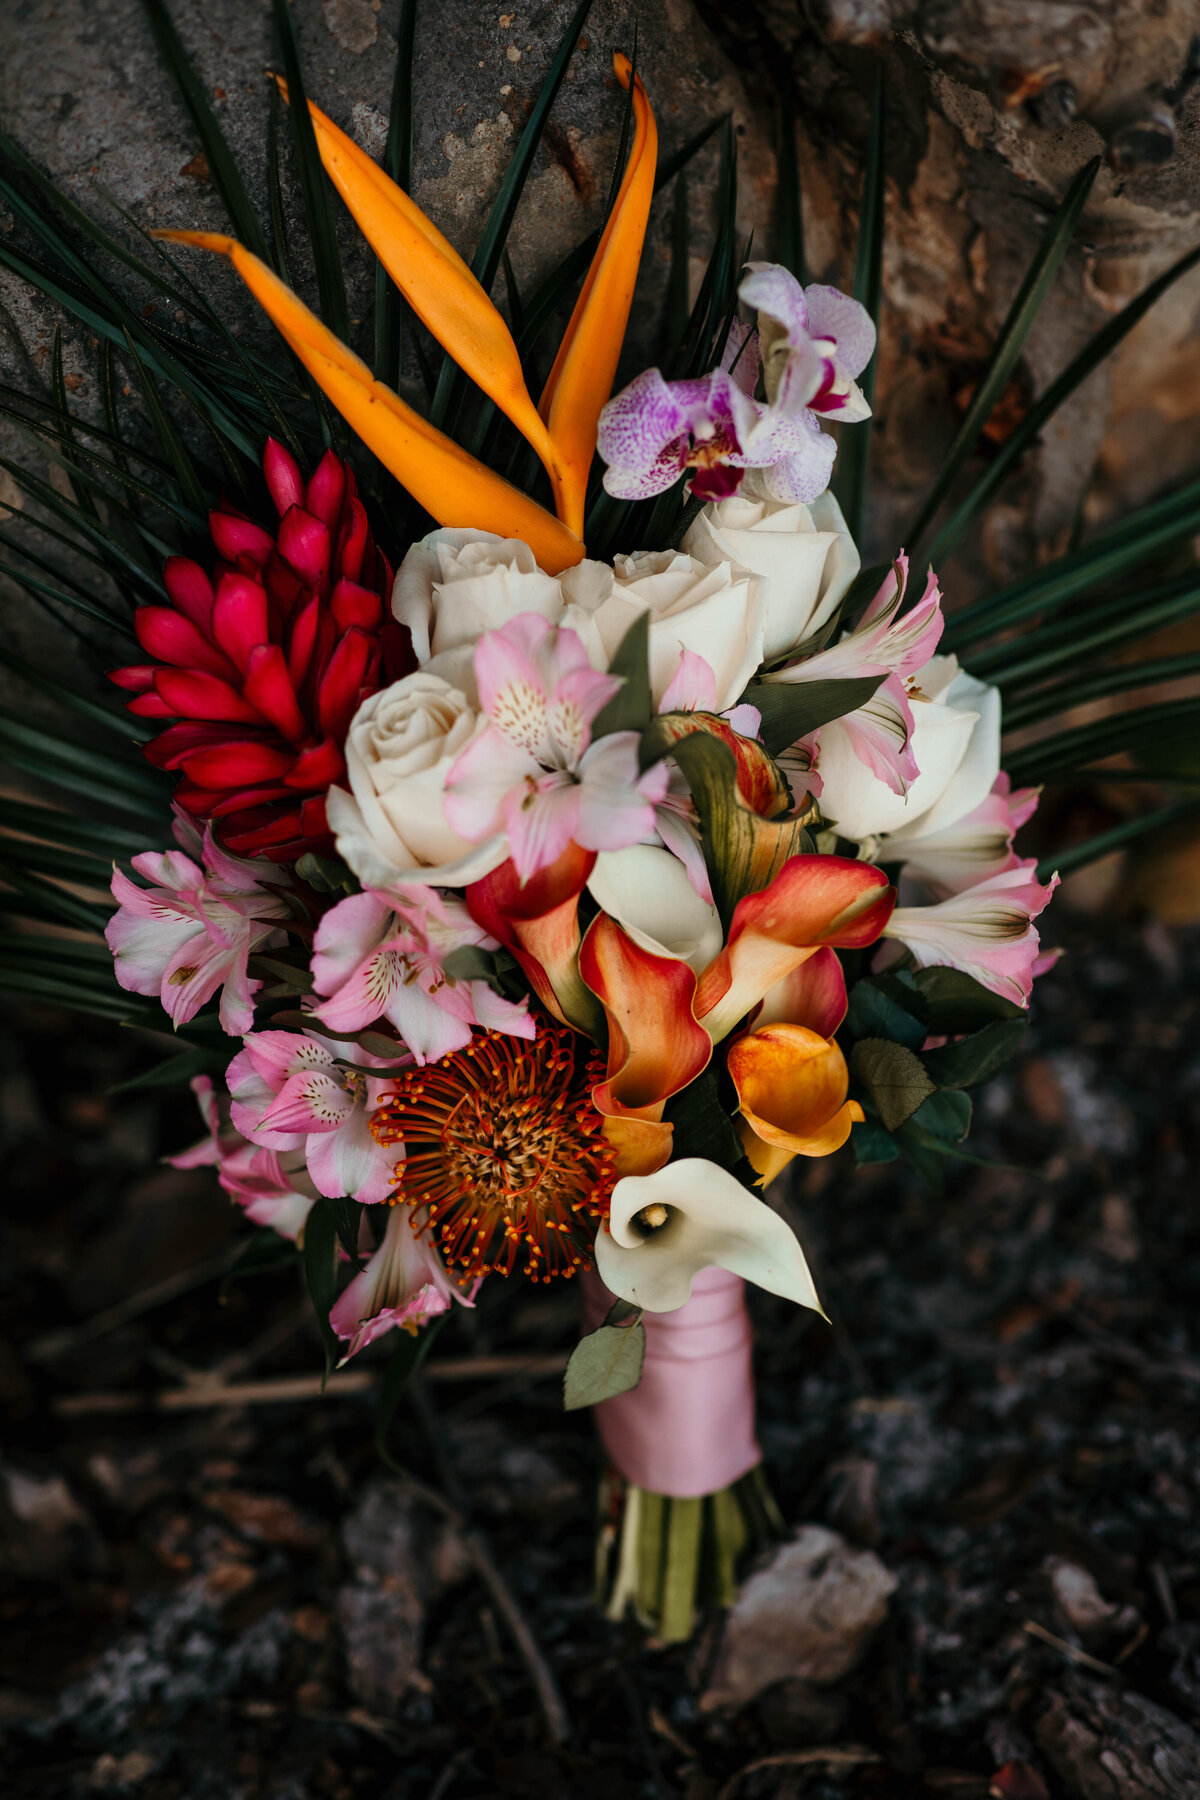 A picture of the bride's beautiful bouquet of roses and exotic flowers, showing both the strong and delicate colors by Garry & Stacy Photography Co - Sarasota Florida wedding photography